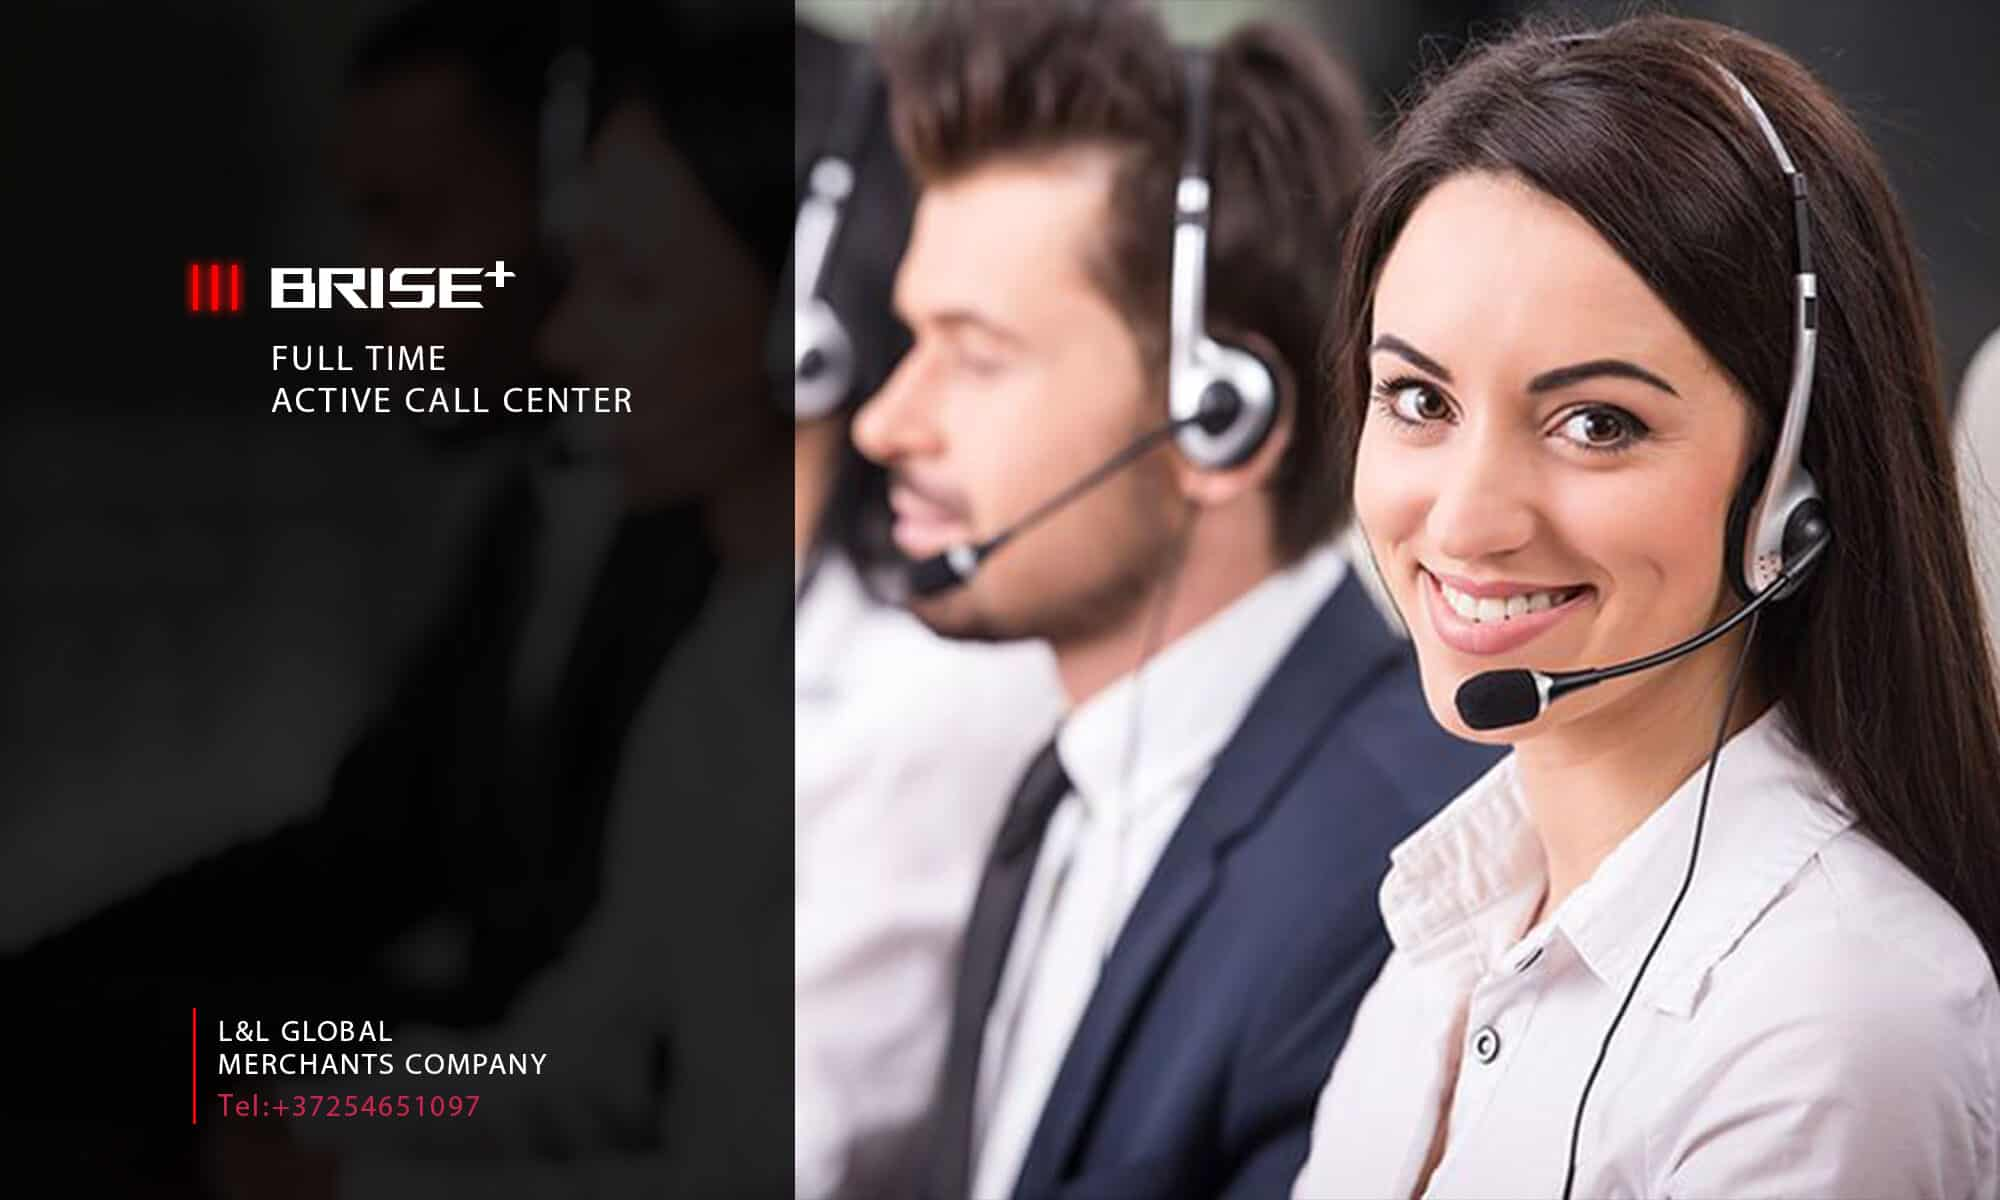 BRISE PLUS WOMEN ON CALL CENTER WITH HEAD SET